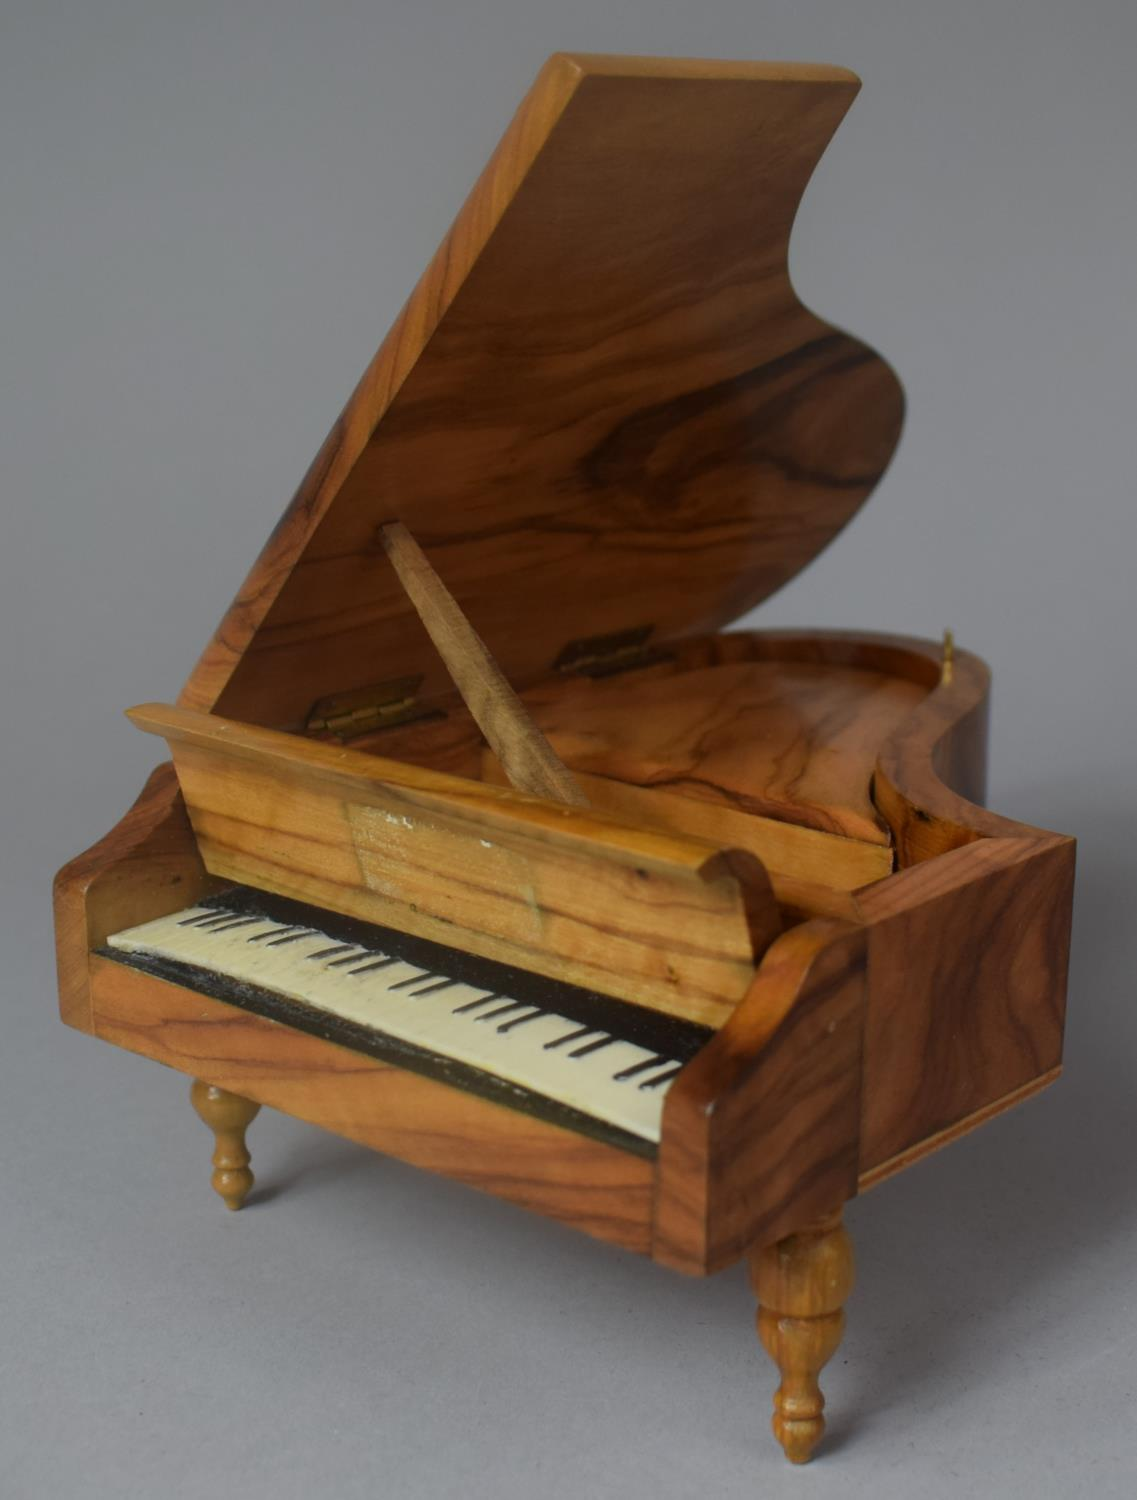 A Novelty Continental Musical Box in the Form of a Grand Piano, Movement Playing Dr. Zhivago, 17cm - Image 4 of 5